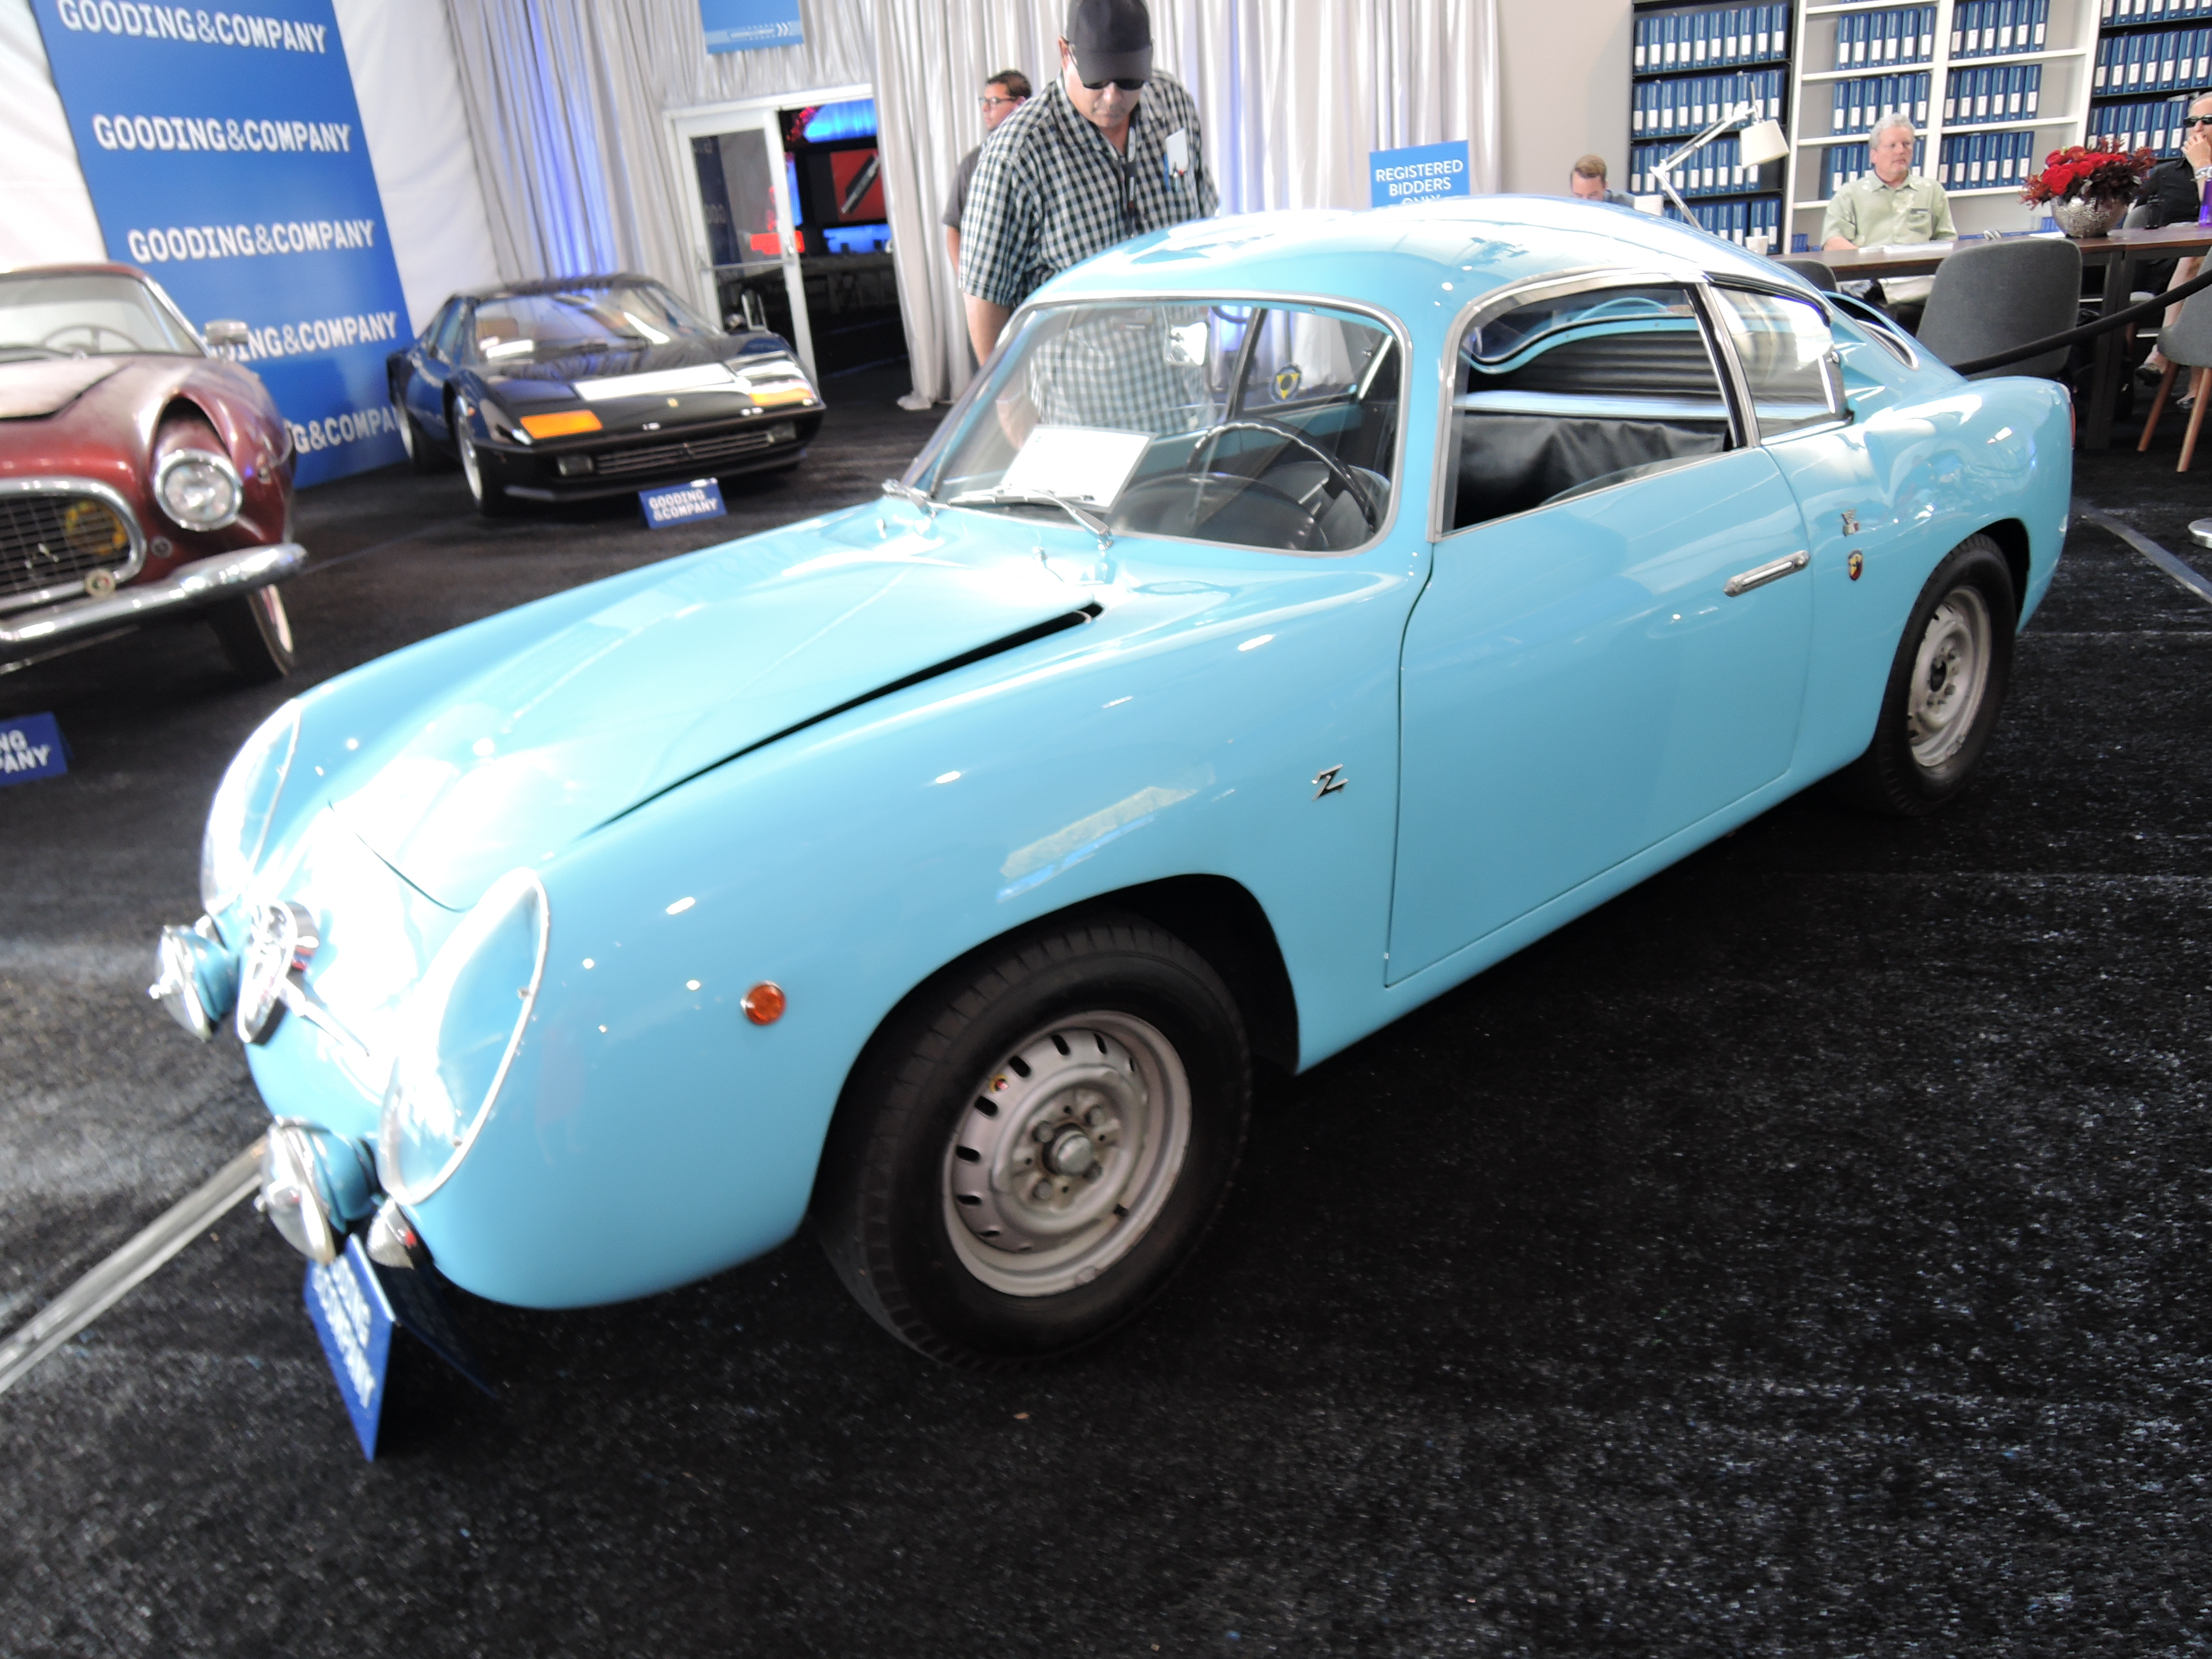 blue 1959 Zagato-bodied Fiat Abarth 750 GT at Gooding and Co. with the distinctive Zagato - classic car auctions